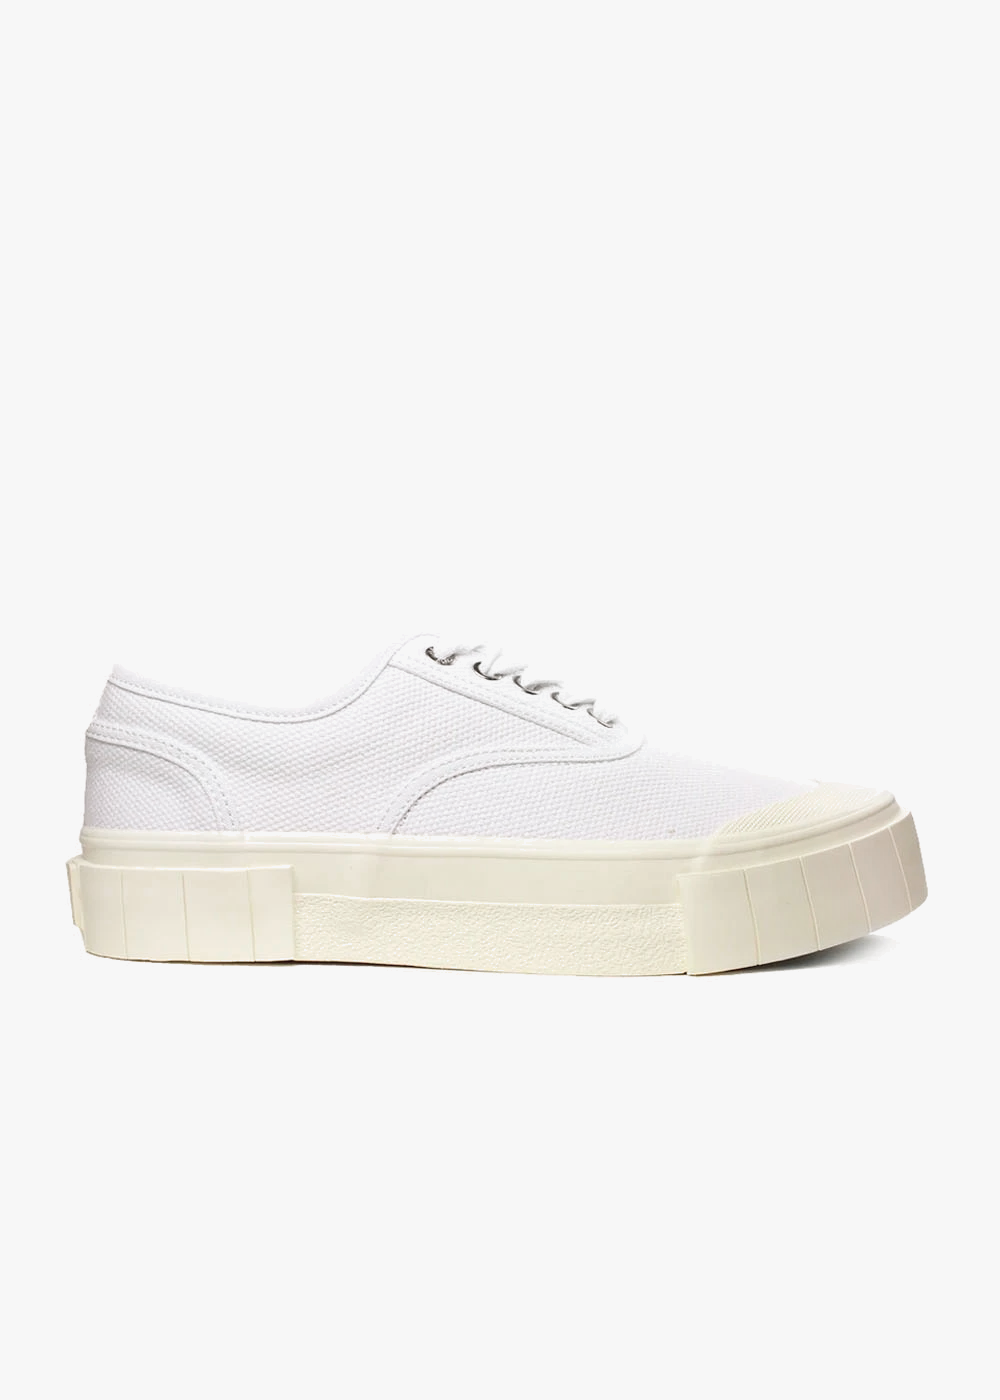 GOOD NEWS White Ace Sneakers — Shop sustainable fashion and slow fashion at New Classics Studios